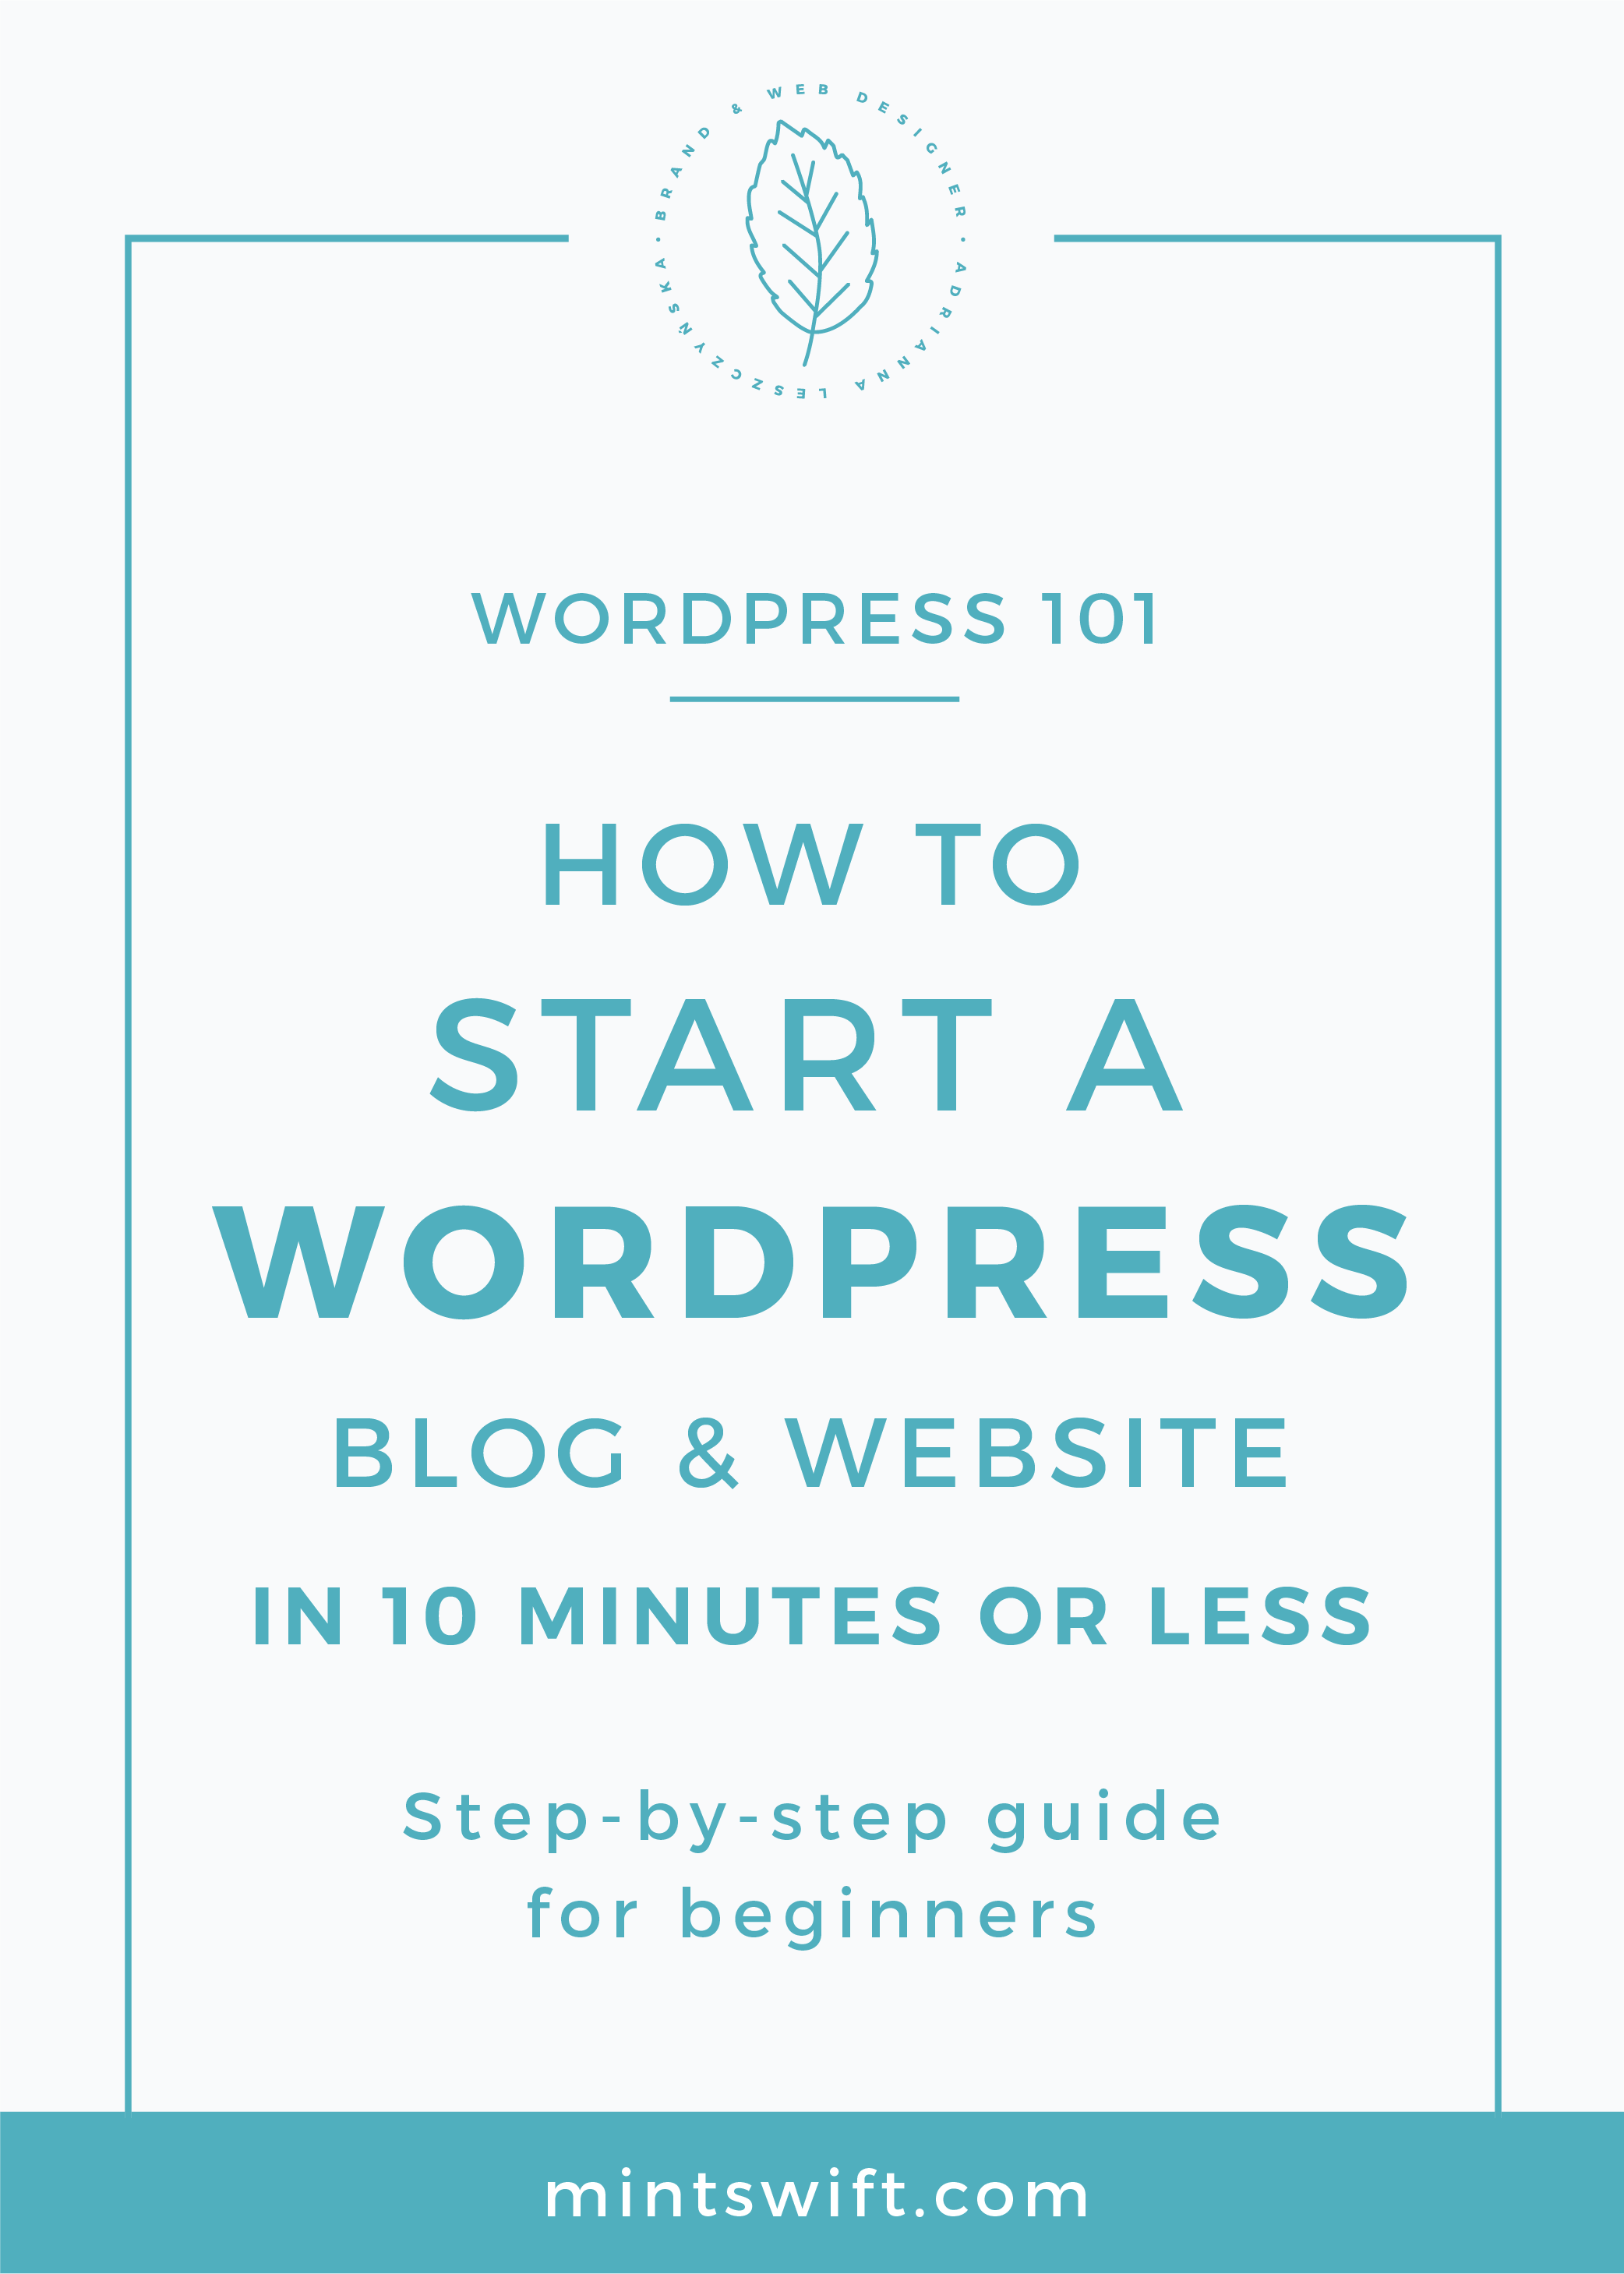 How to Start a WordPress Blog & Website in 10 Minutes or Less. Step-by-Step Guide for Beginners MintSwift